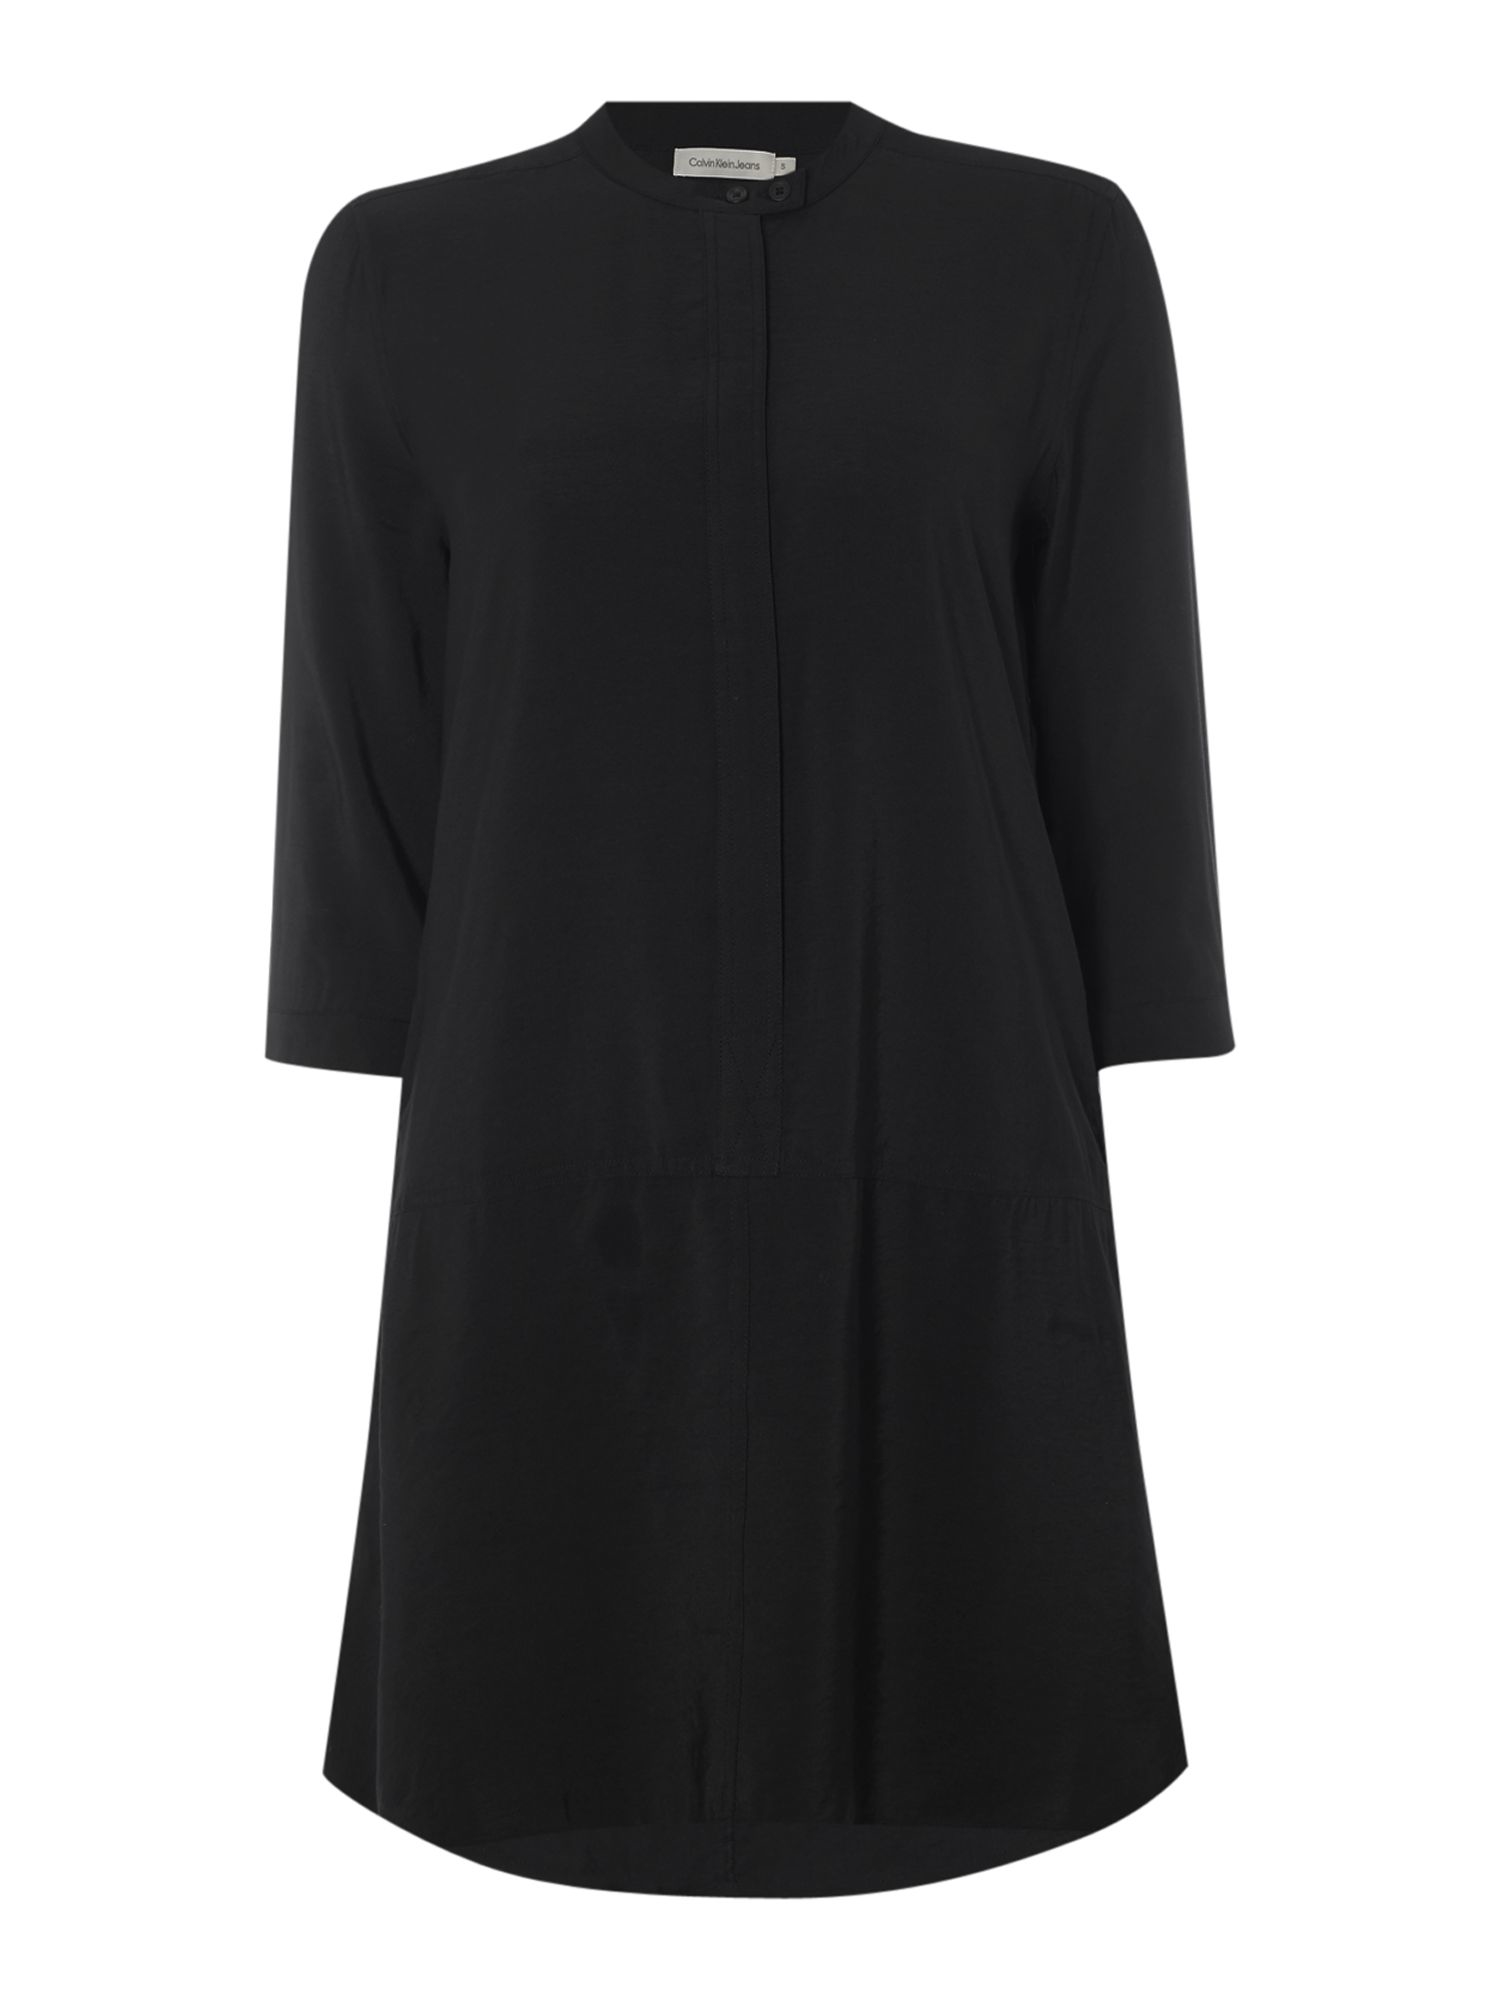 Calvin klein rille long sleeve shirt dress in meteorite in for Calvin klein dress shirts sale